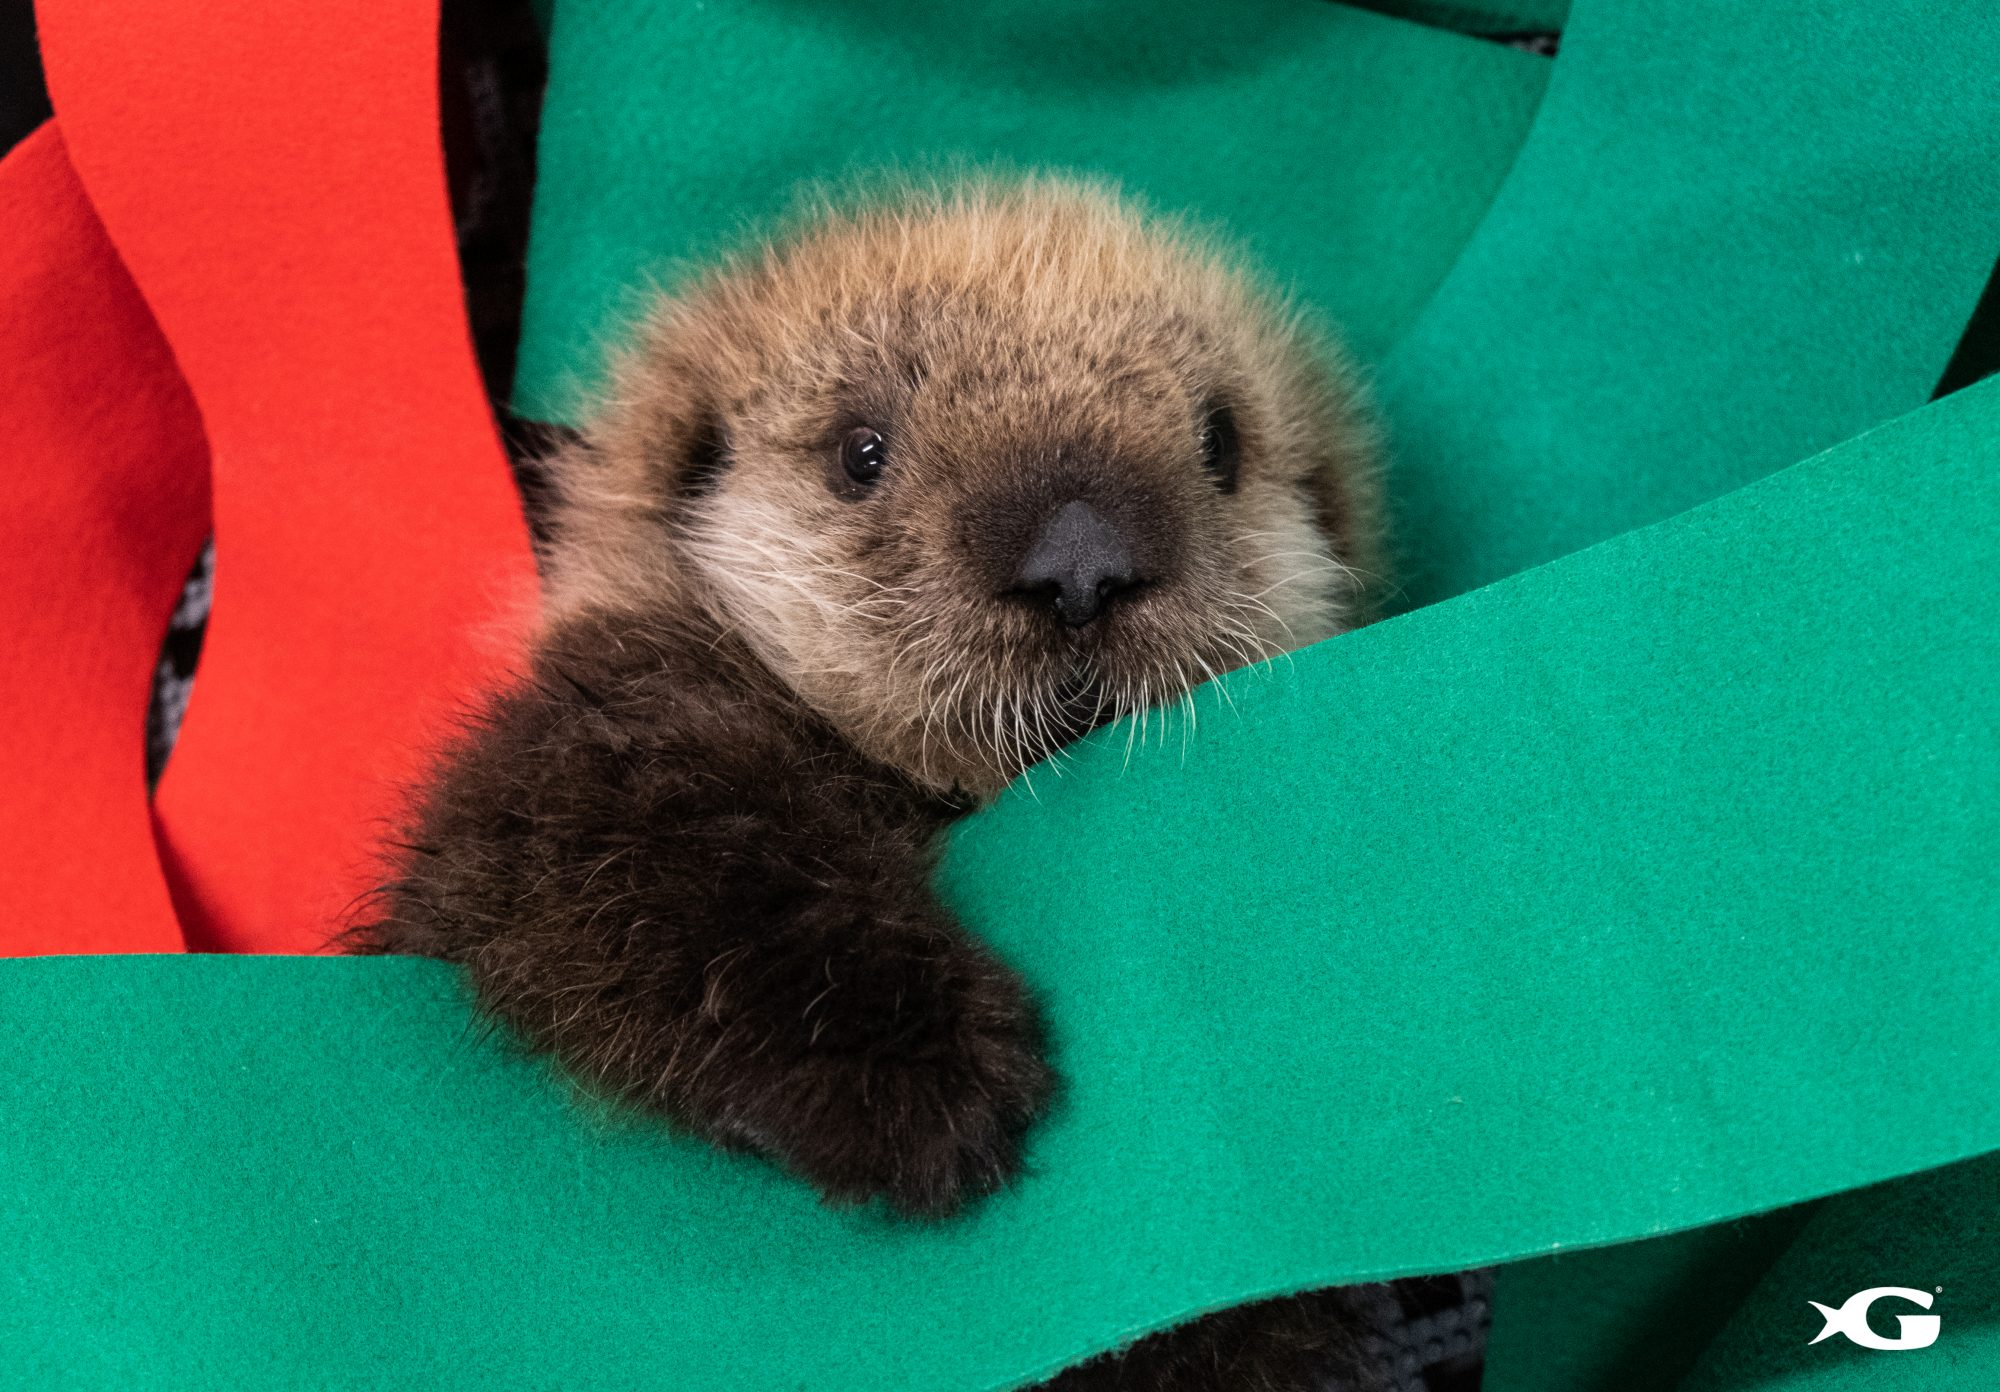 Two Rescued Baby Sea Otters Have Arrived at Georgia Aquarium